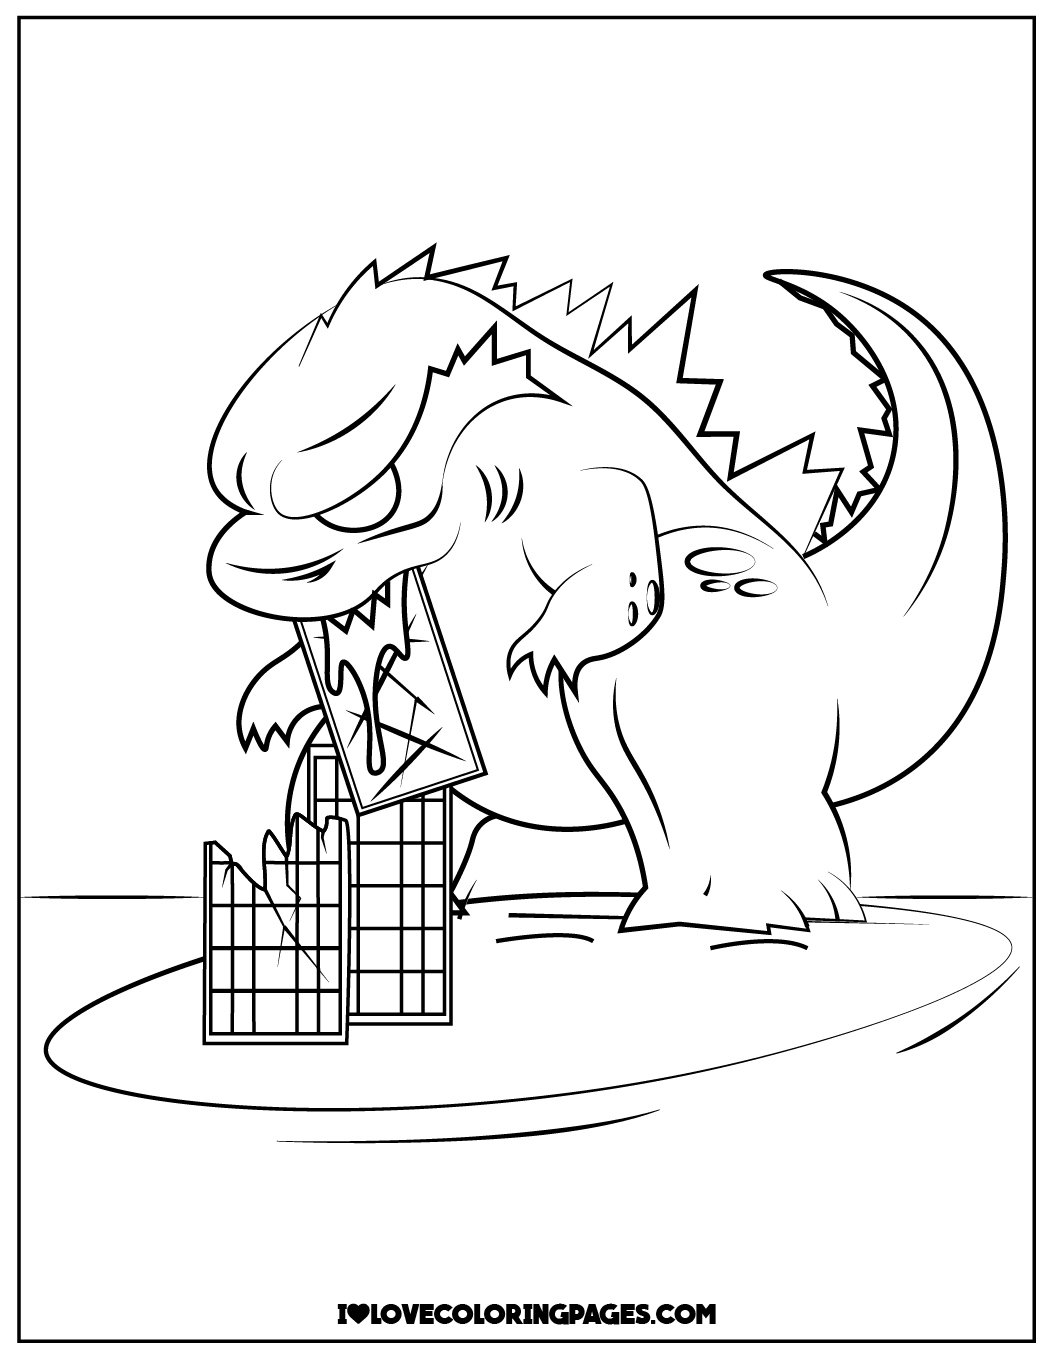 godzilla coloring printable ilovecoloringpages acrylic paint set pumkin patch the snowy coloring pages Godzilla Coloring Page